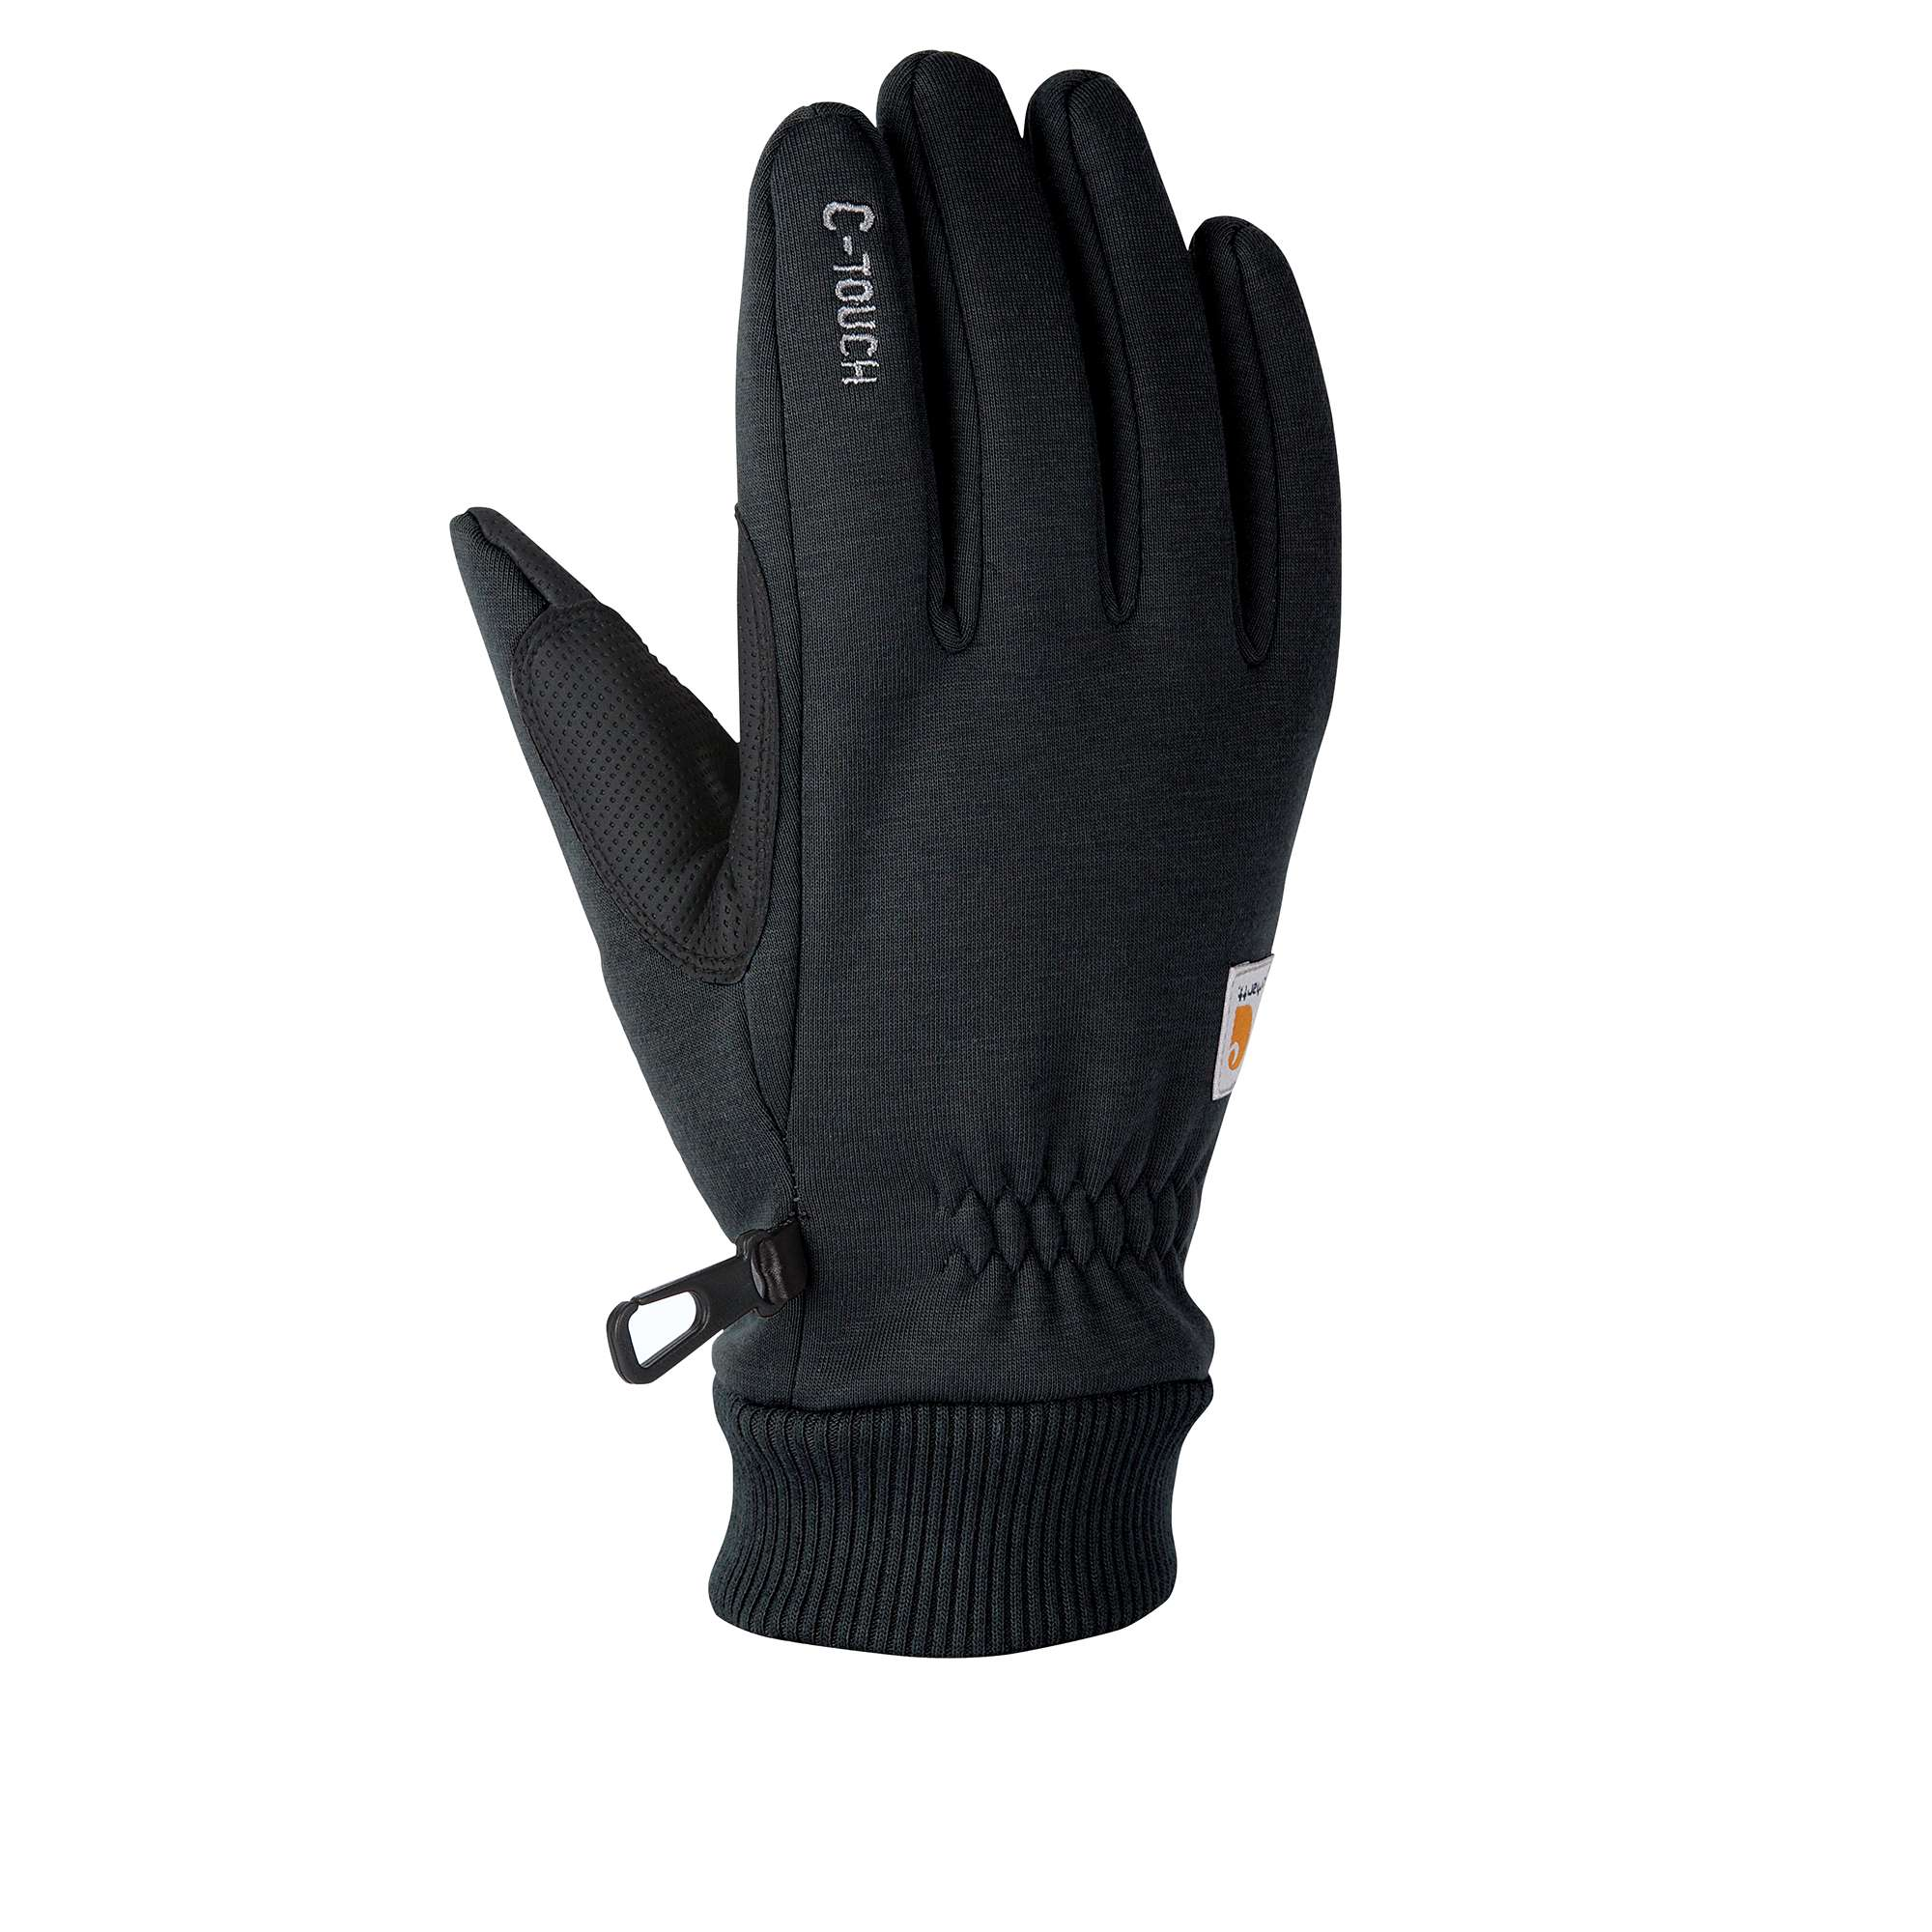 Carhartt C-Touch Knit Glove